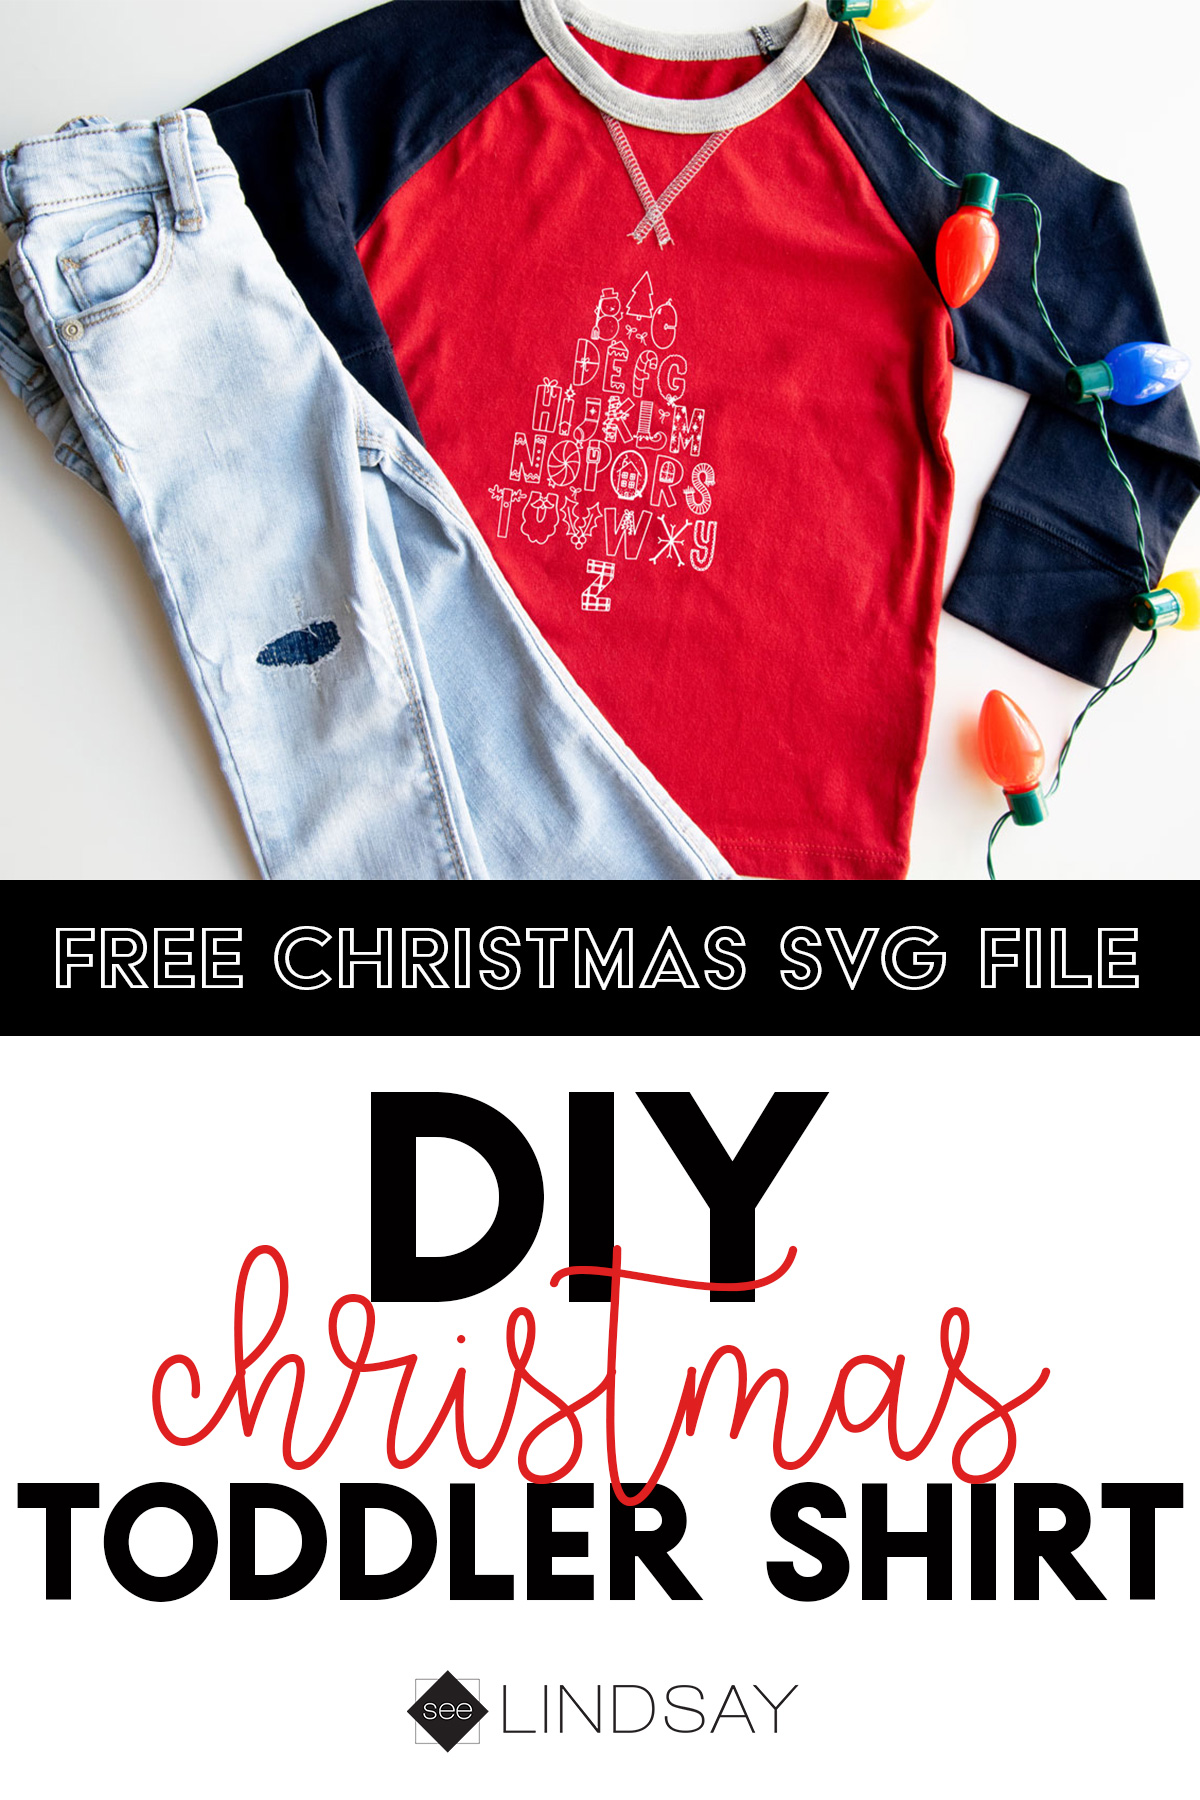 free Christmas svg on shirt